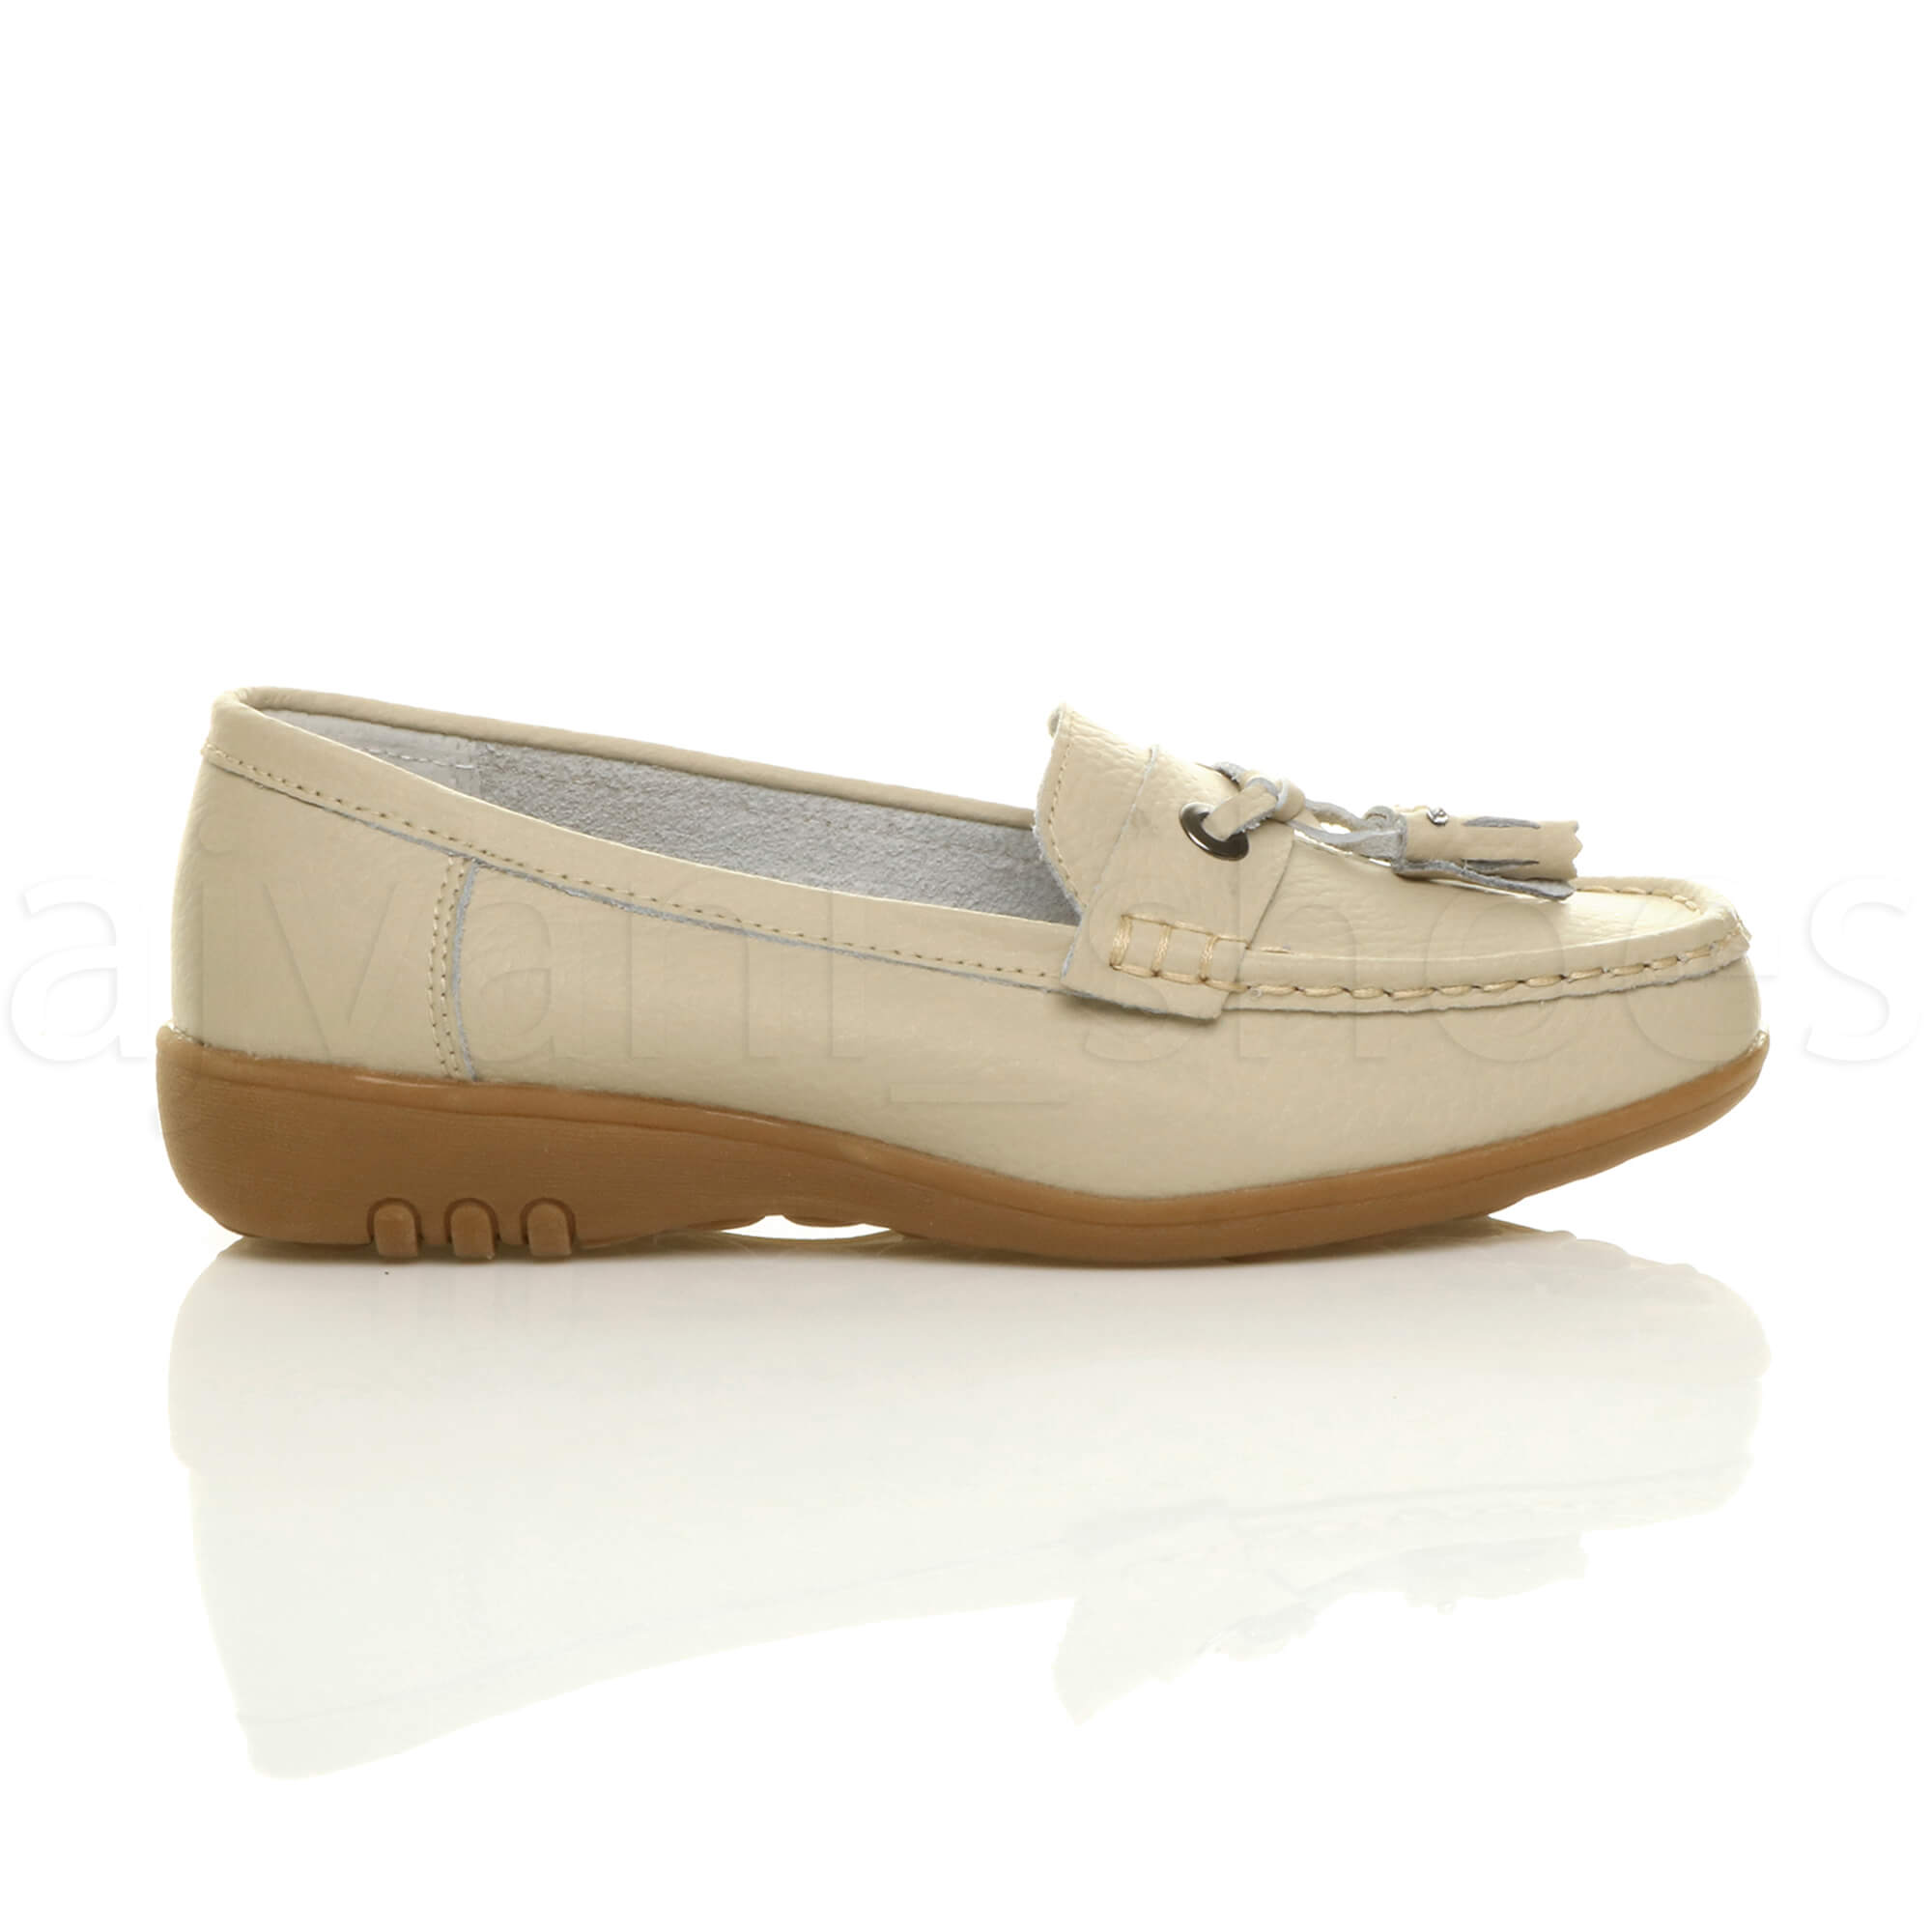 WOMENS-LADIES-LOW-HEEL-WEDGE-LEATHER-TASSEL-LOAFERS-COMFORT-MOCCASINS-SHOES-SIZE thumbnail 3